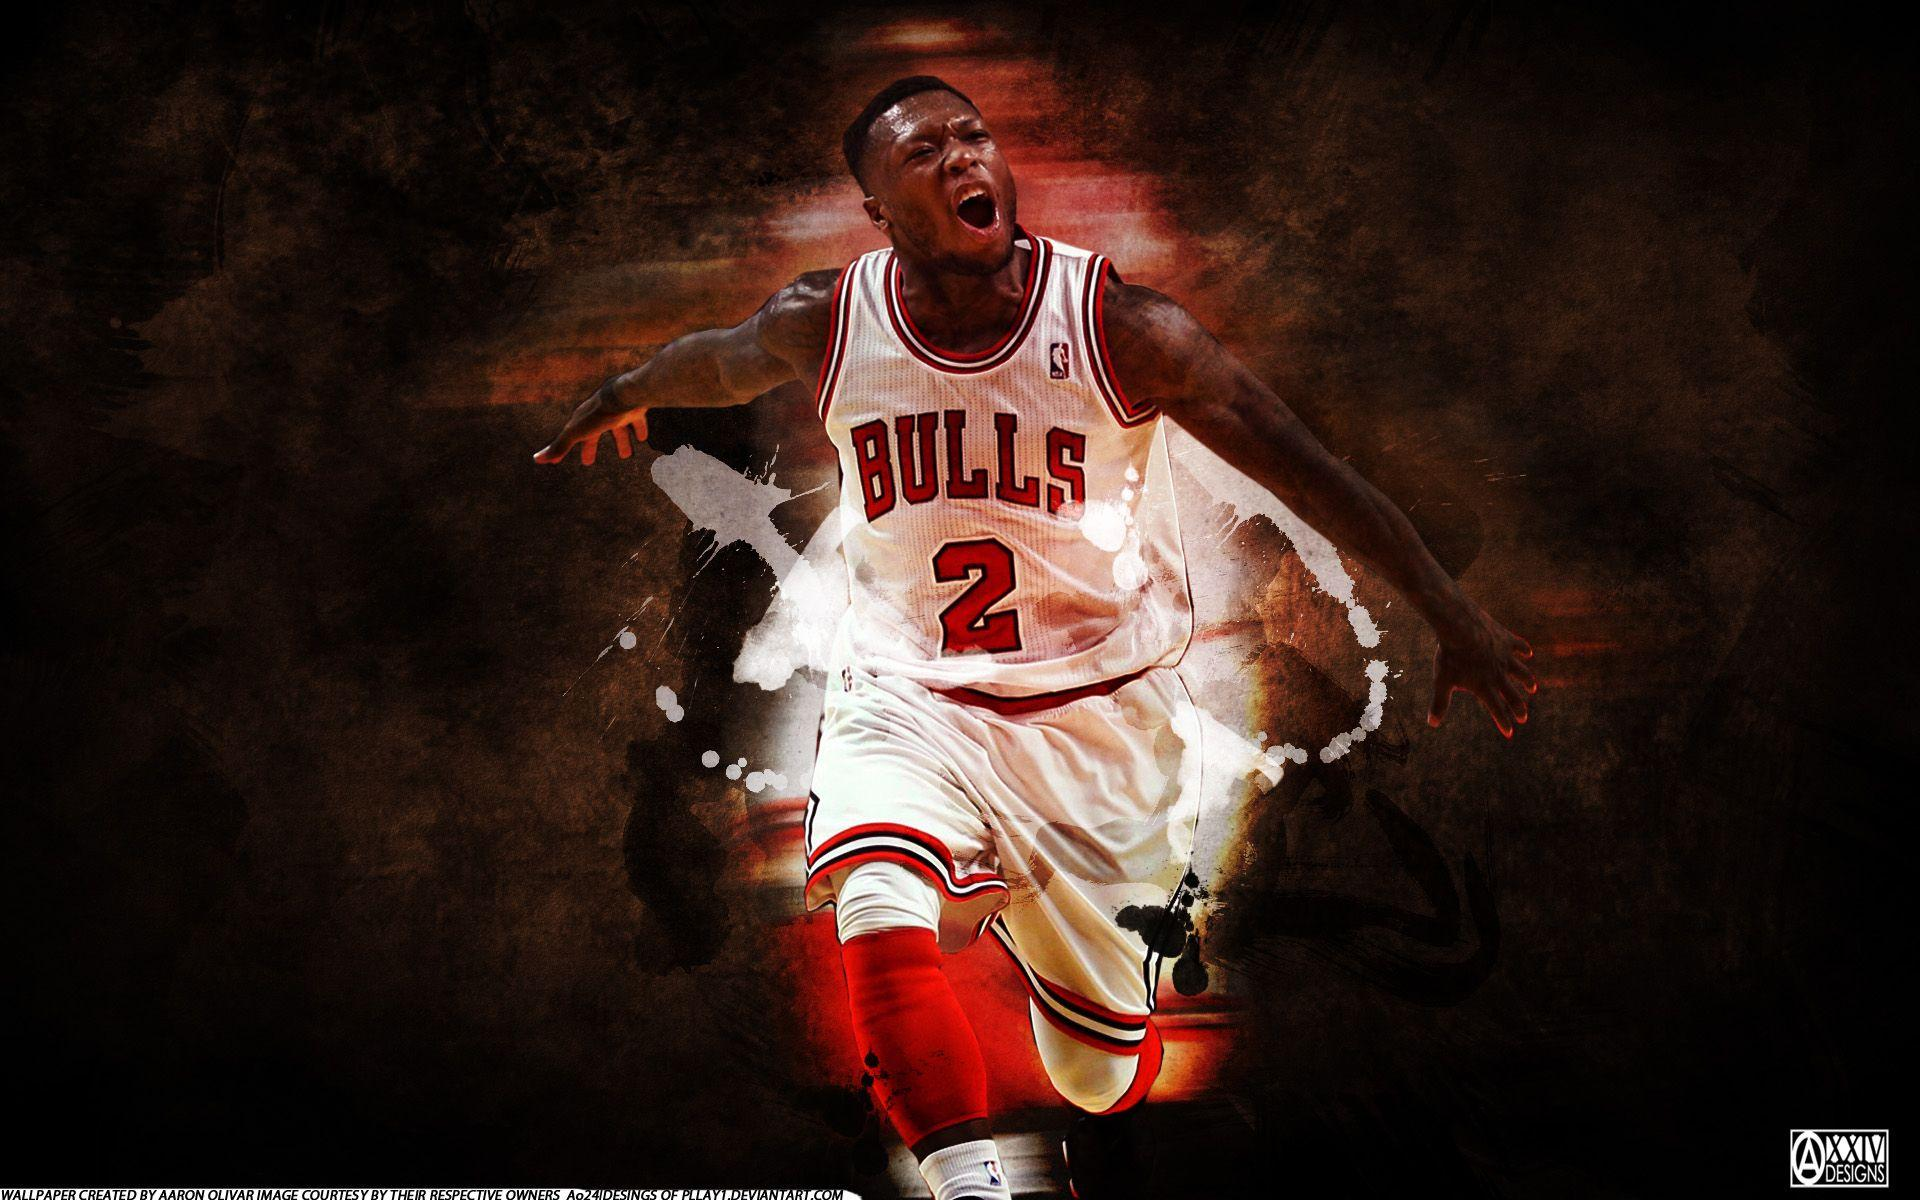 df346a5b2c8 Nate Robinson Wallpapers For Laptops 2779 - Amazing Wallpaperz